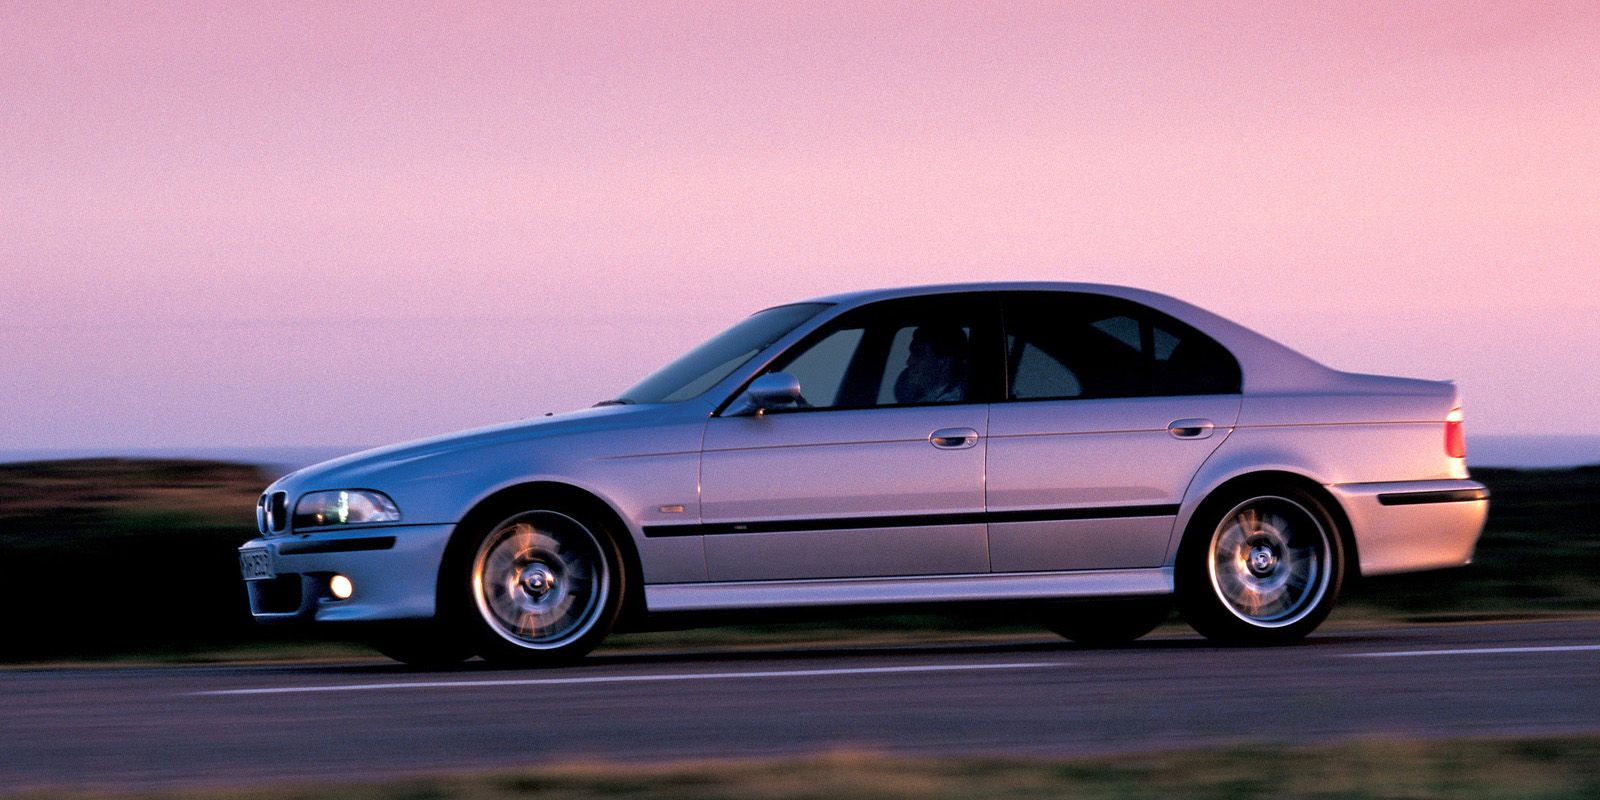 """<p>Many consider the E39 M5 to have the """"<a href=""""http://www.roadandtrack.com/car-culture/a17675/coming-to-america-the-bmw-m5/"""">cleanest 5 Series body style ever</a>."""" This car was fitted with an excellent 5.0 liter V8 engine.</p>"""